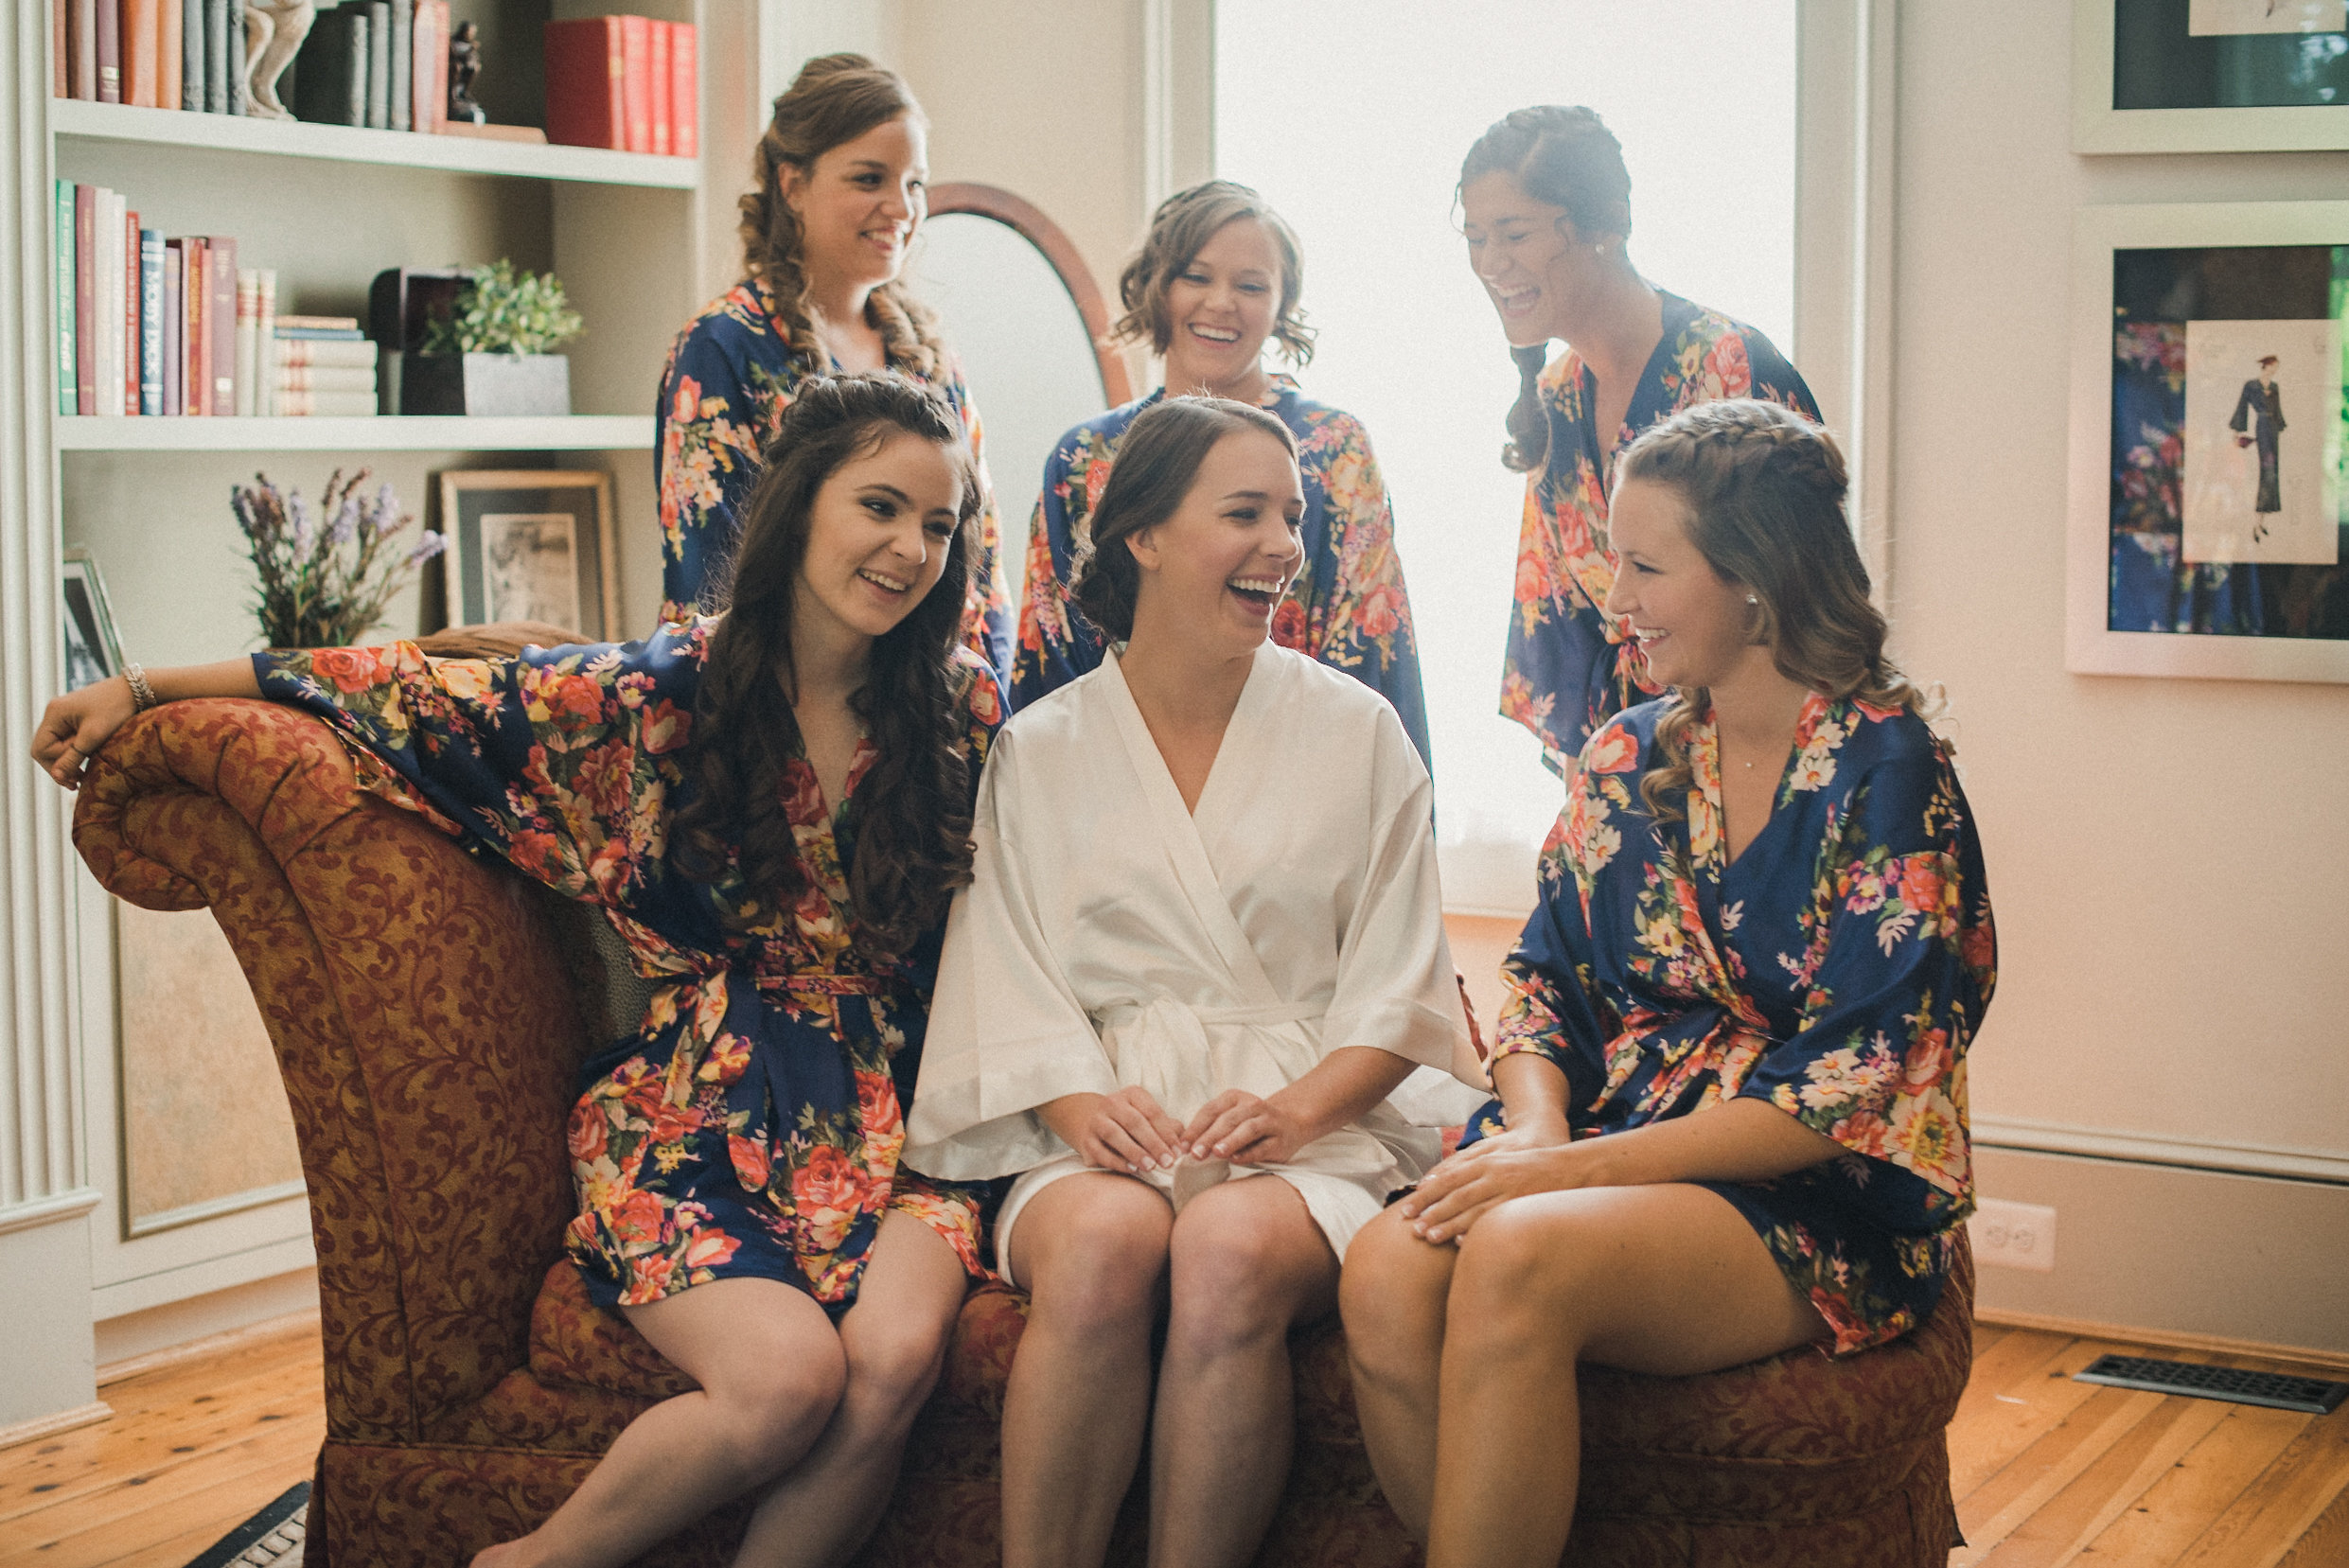 Bride sitting on couch with bridesmaids